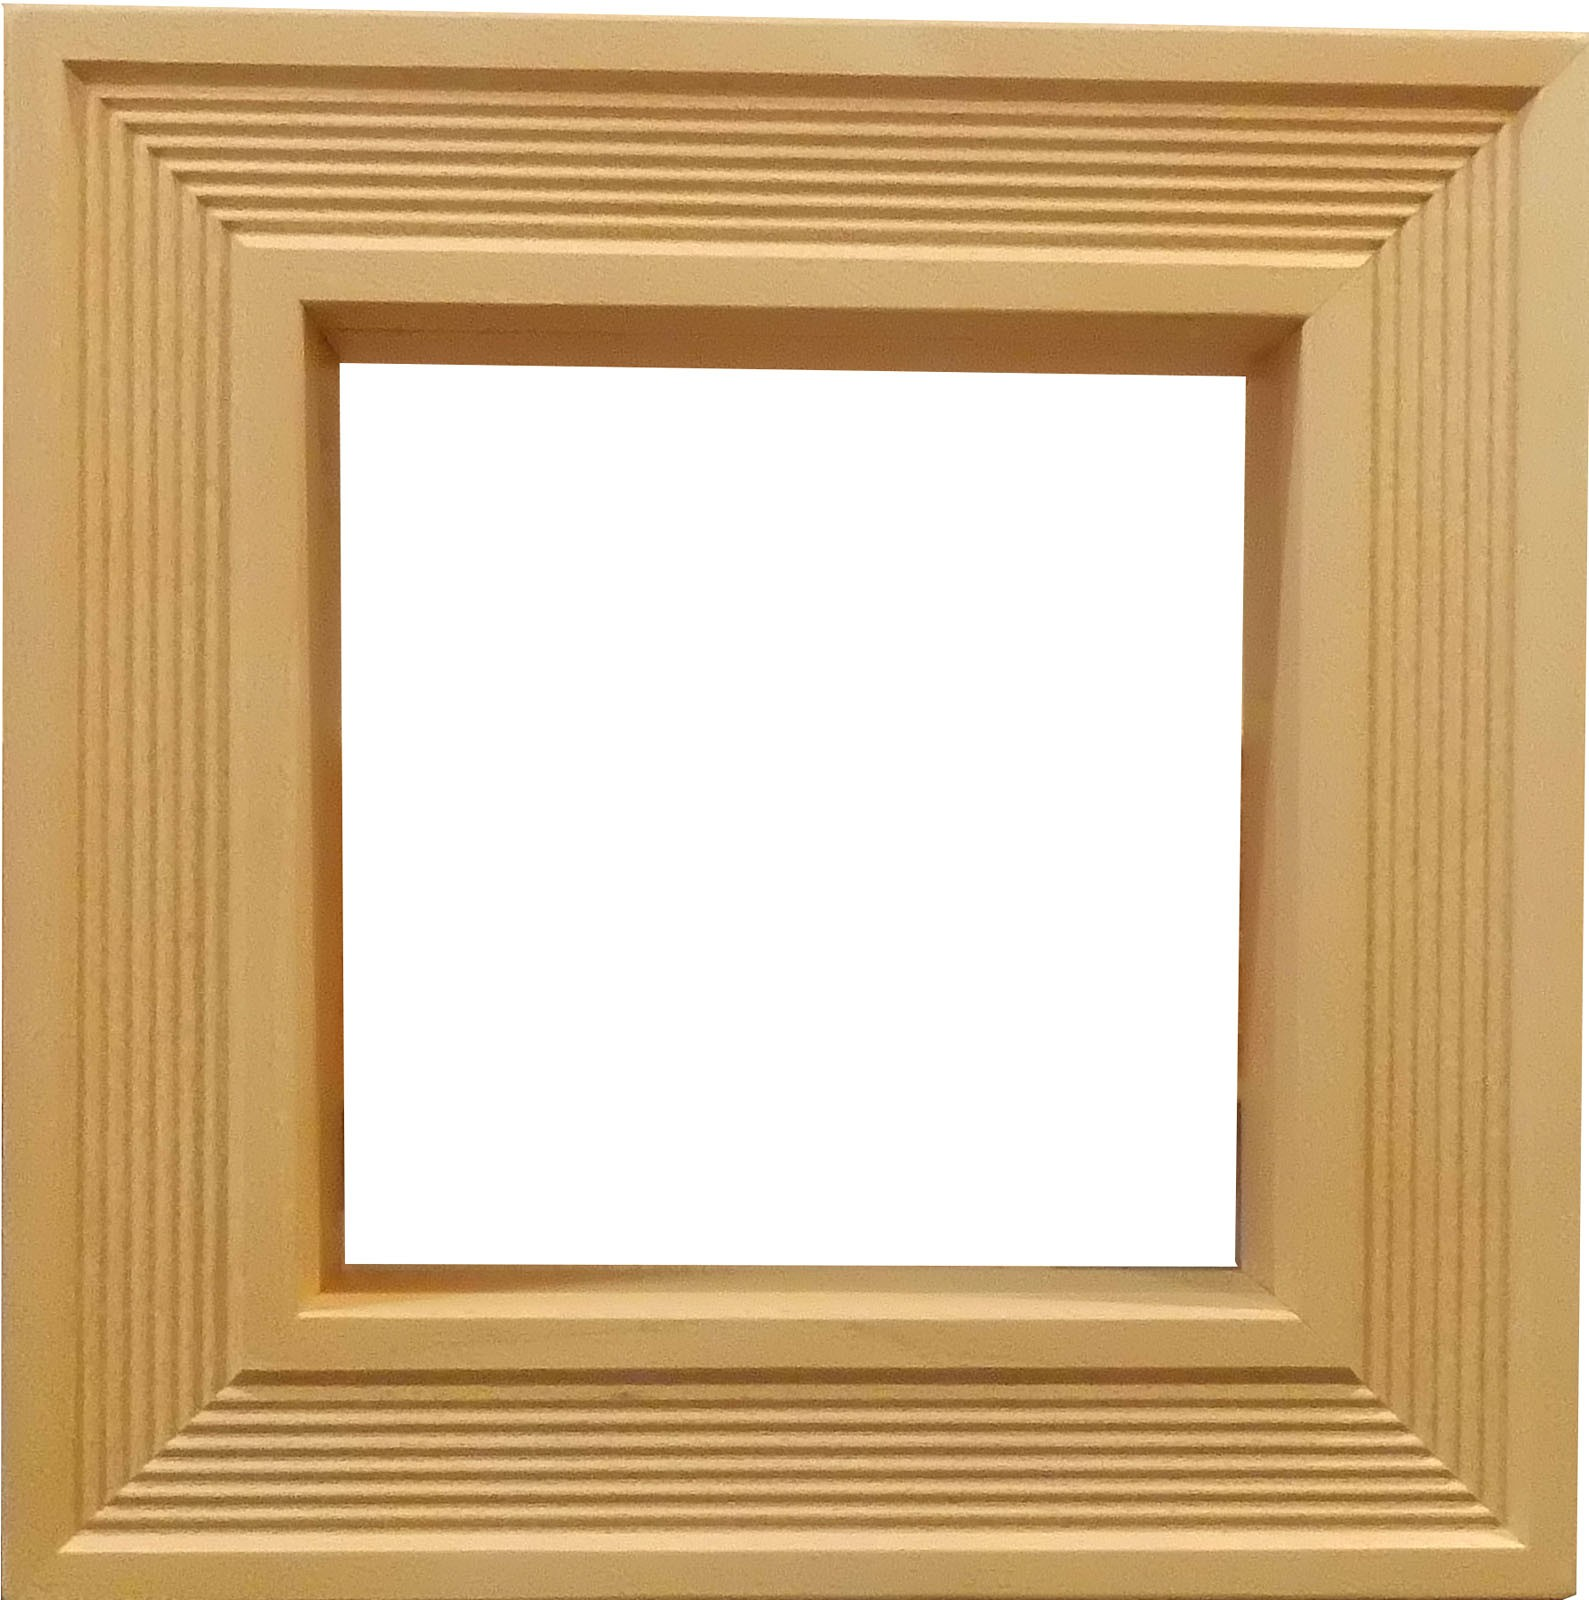 decorative frame, typ 2 natural